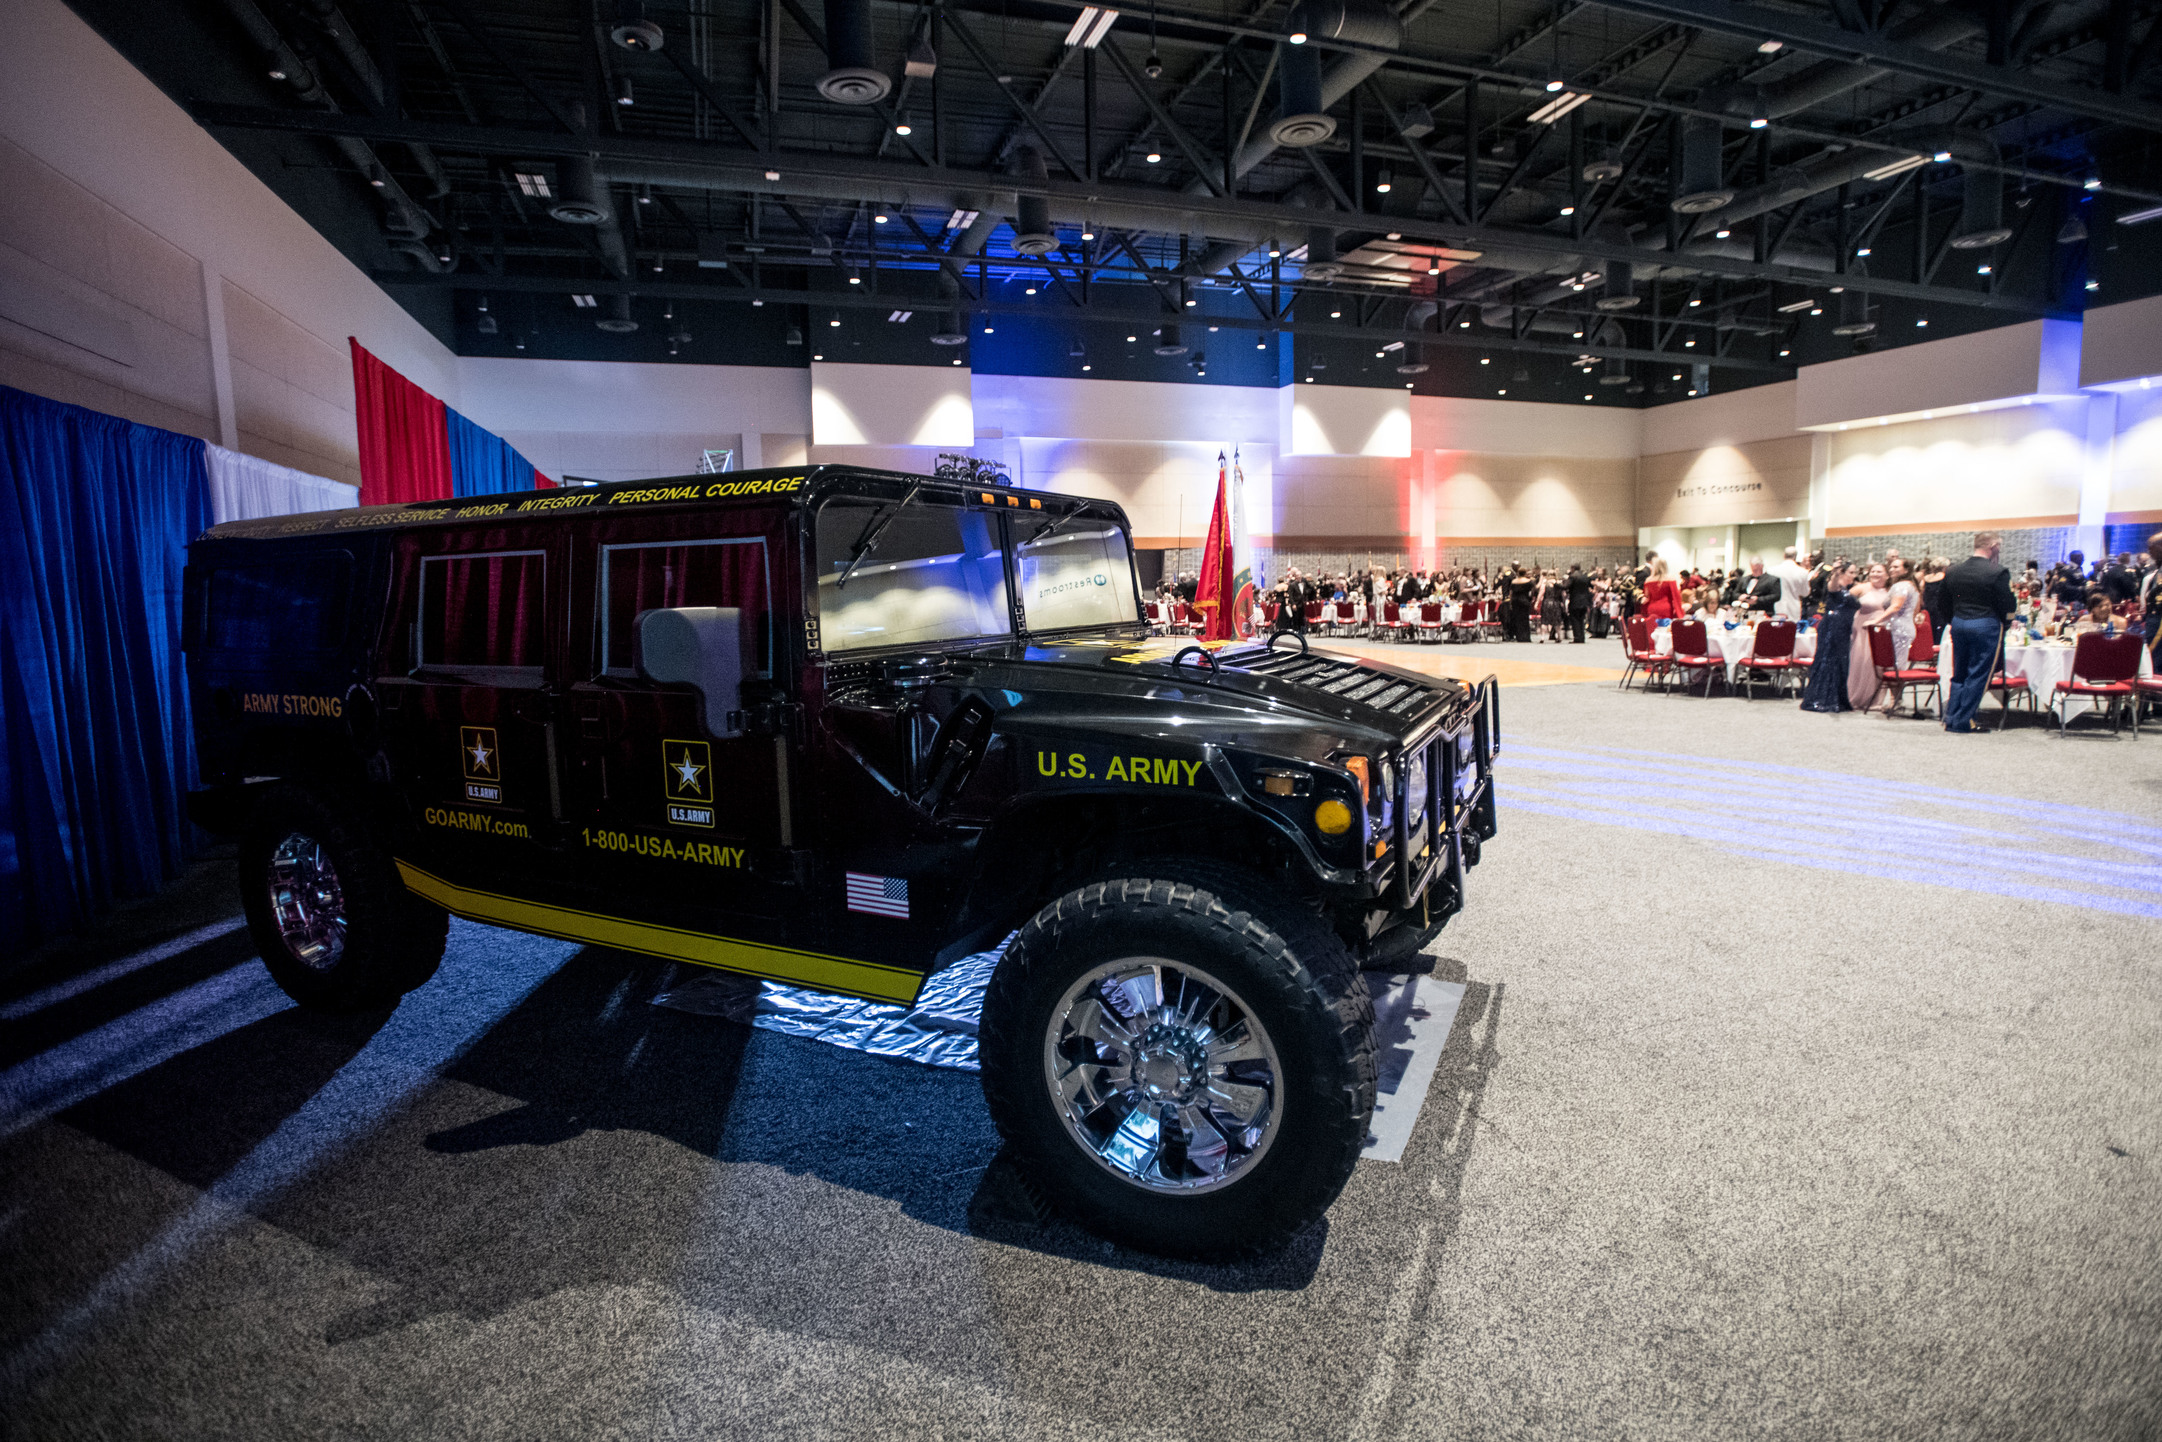 Army Truck inside Exhibit Hall